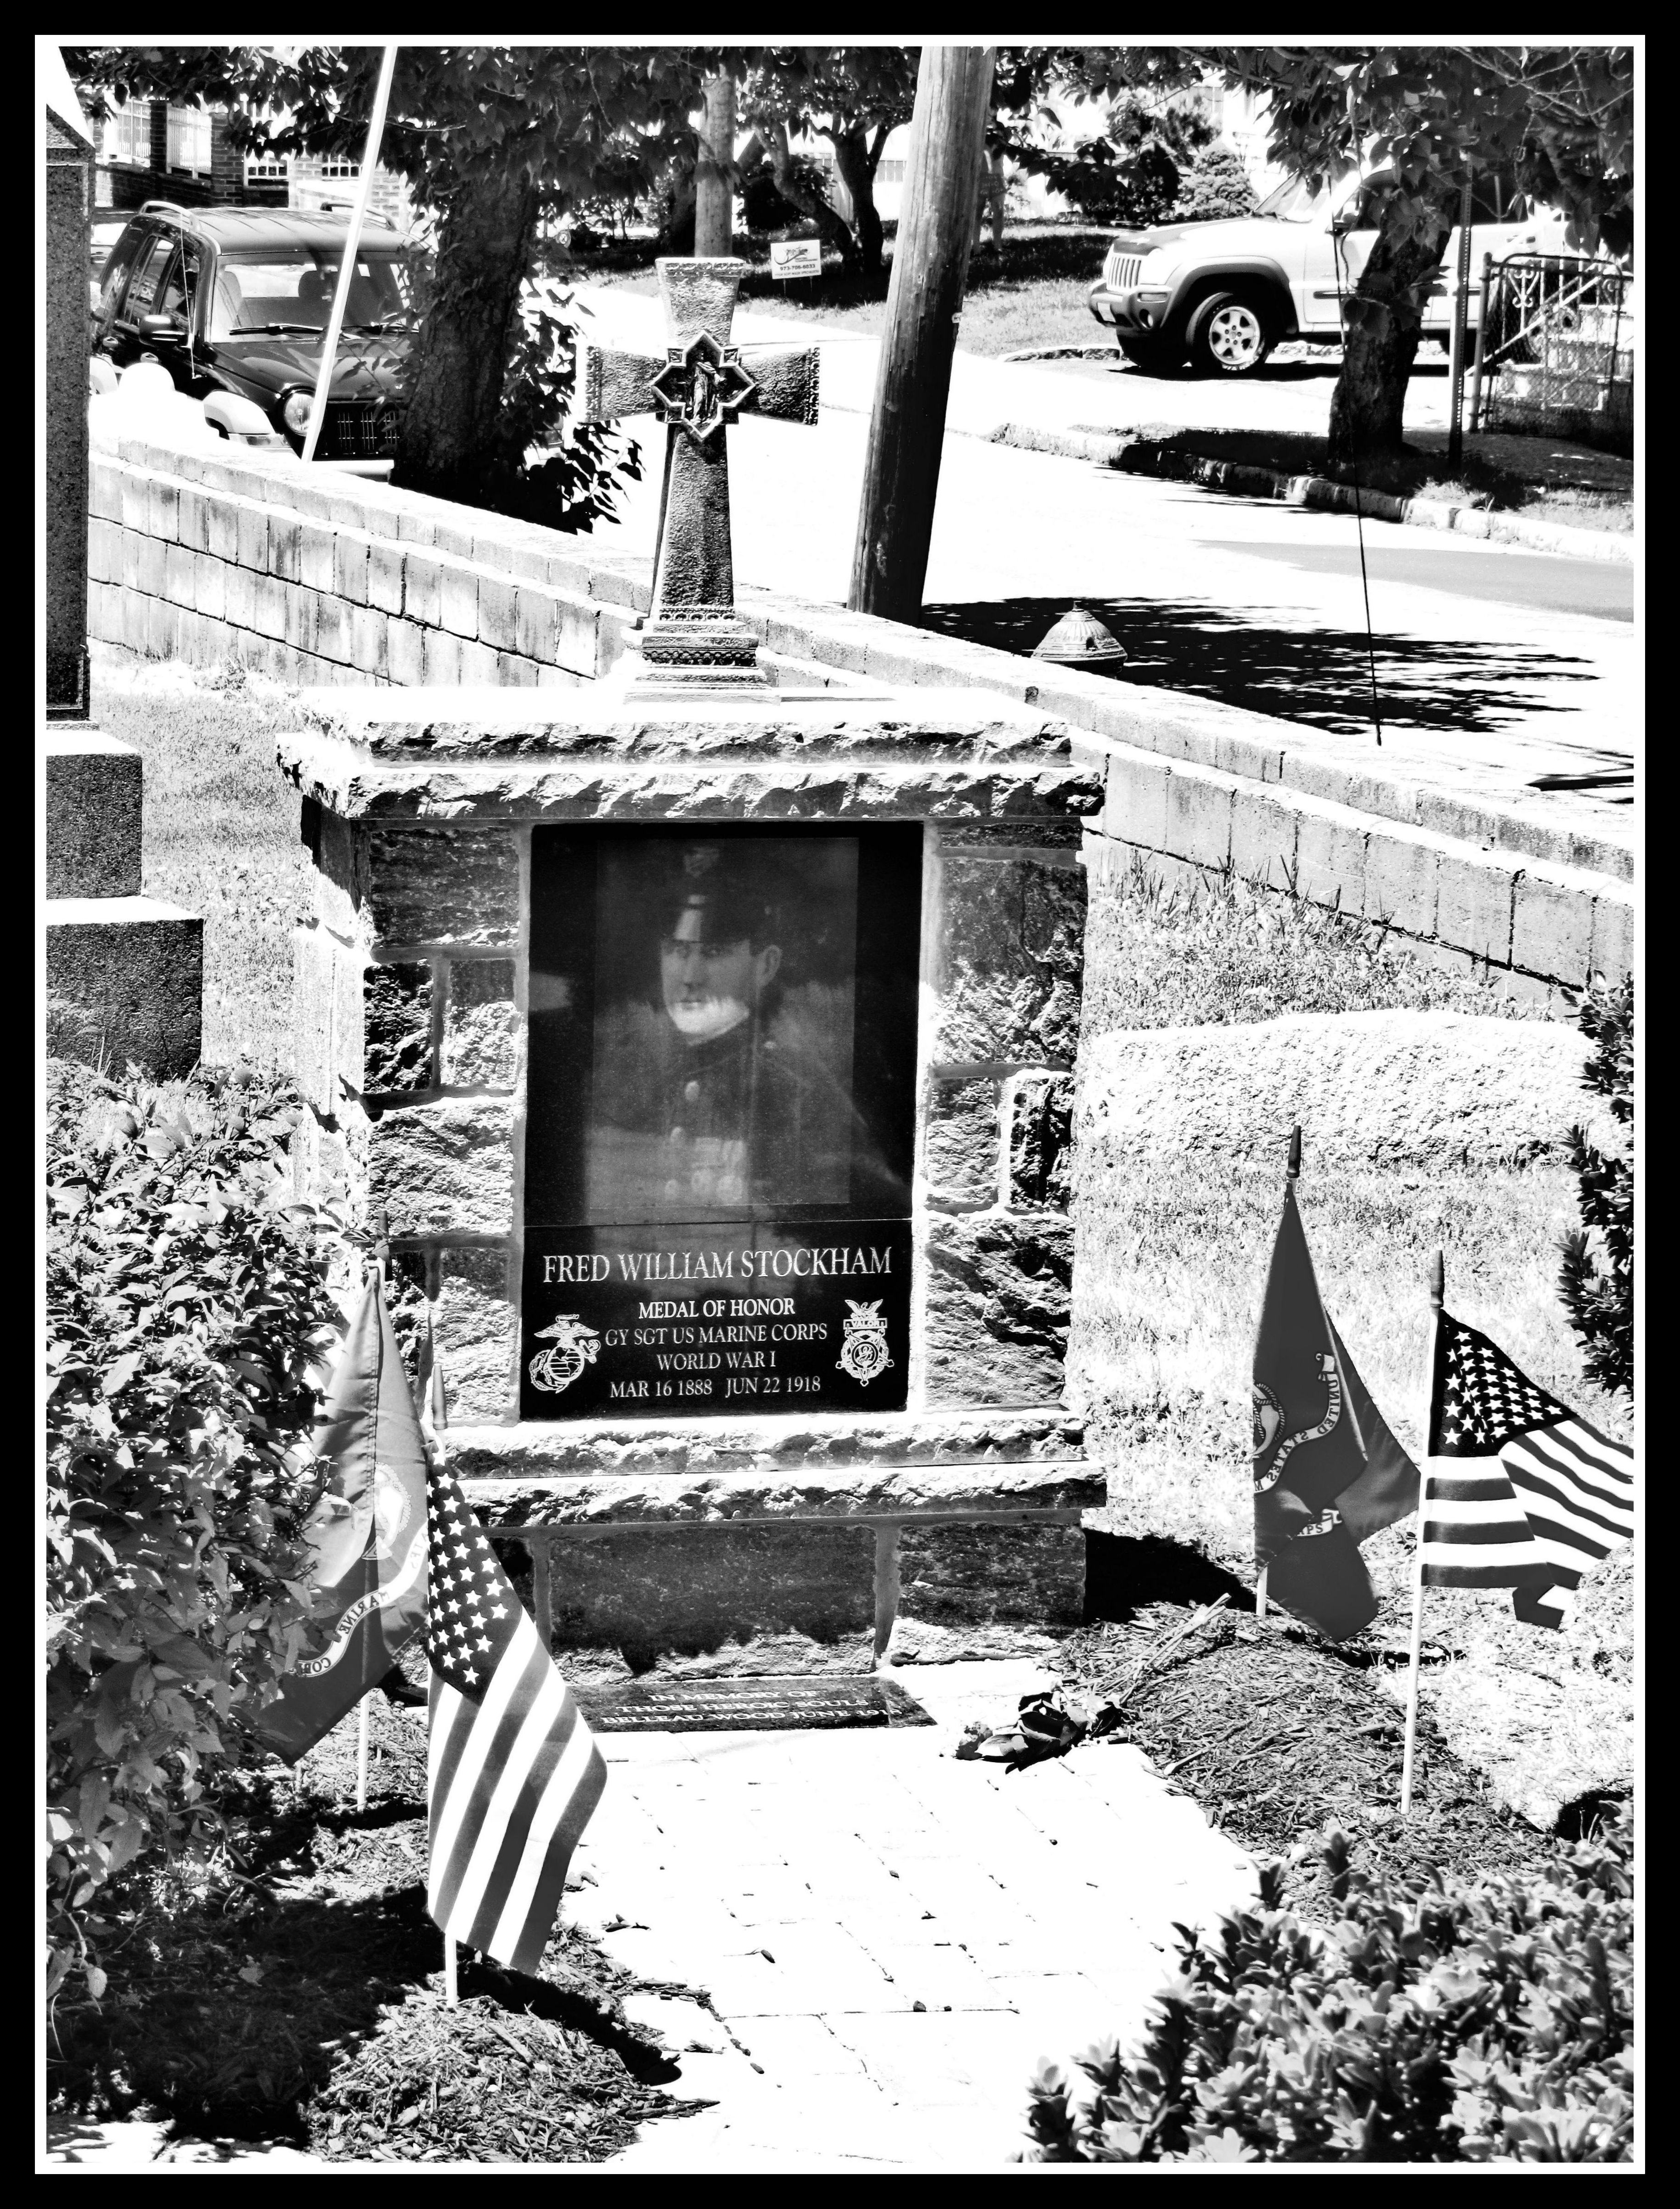 Memorial - Medal of Honor - Fred W. Stockham, Belleville NJ